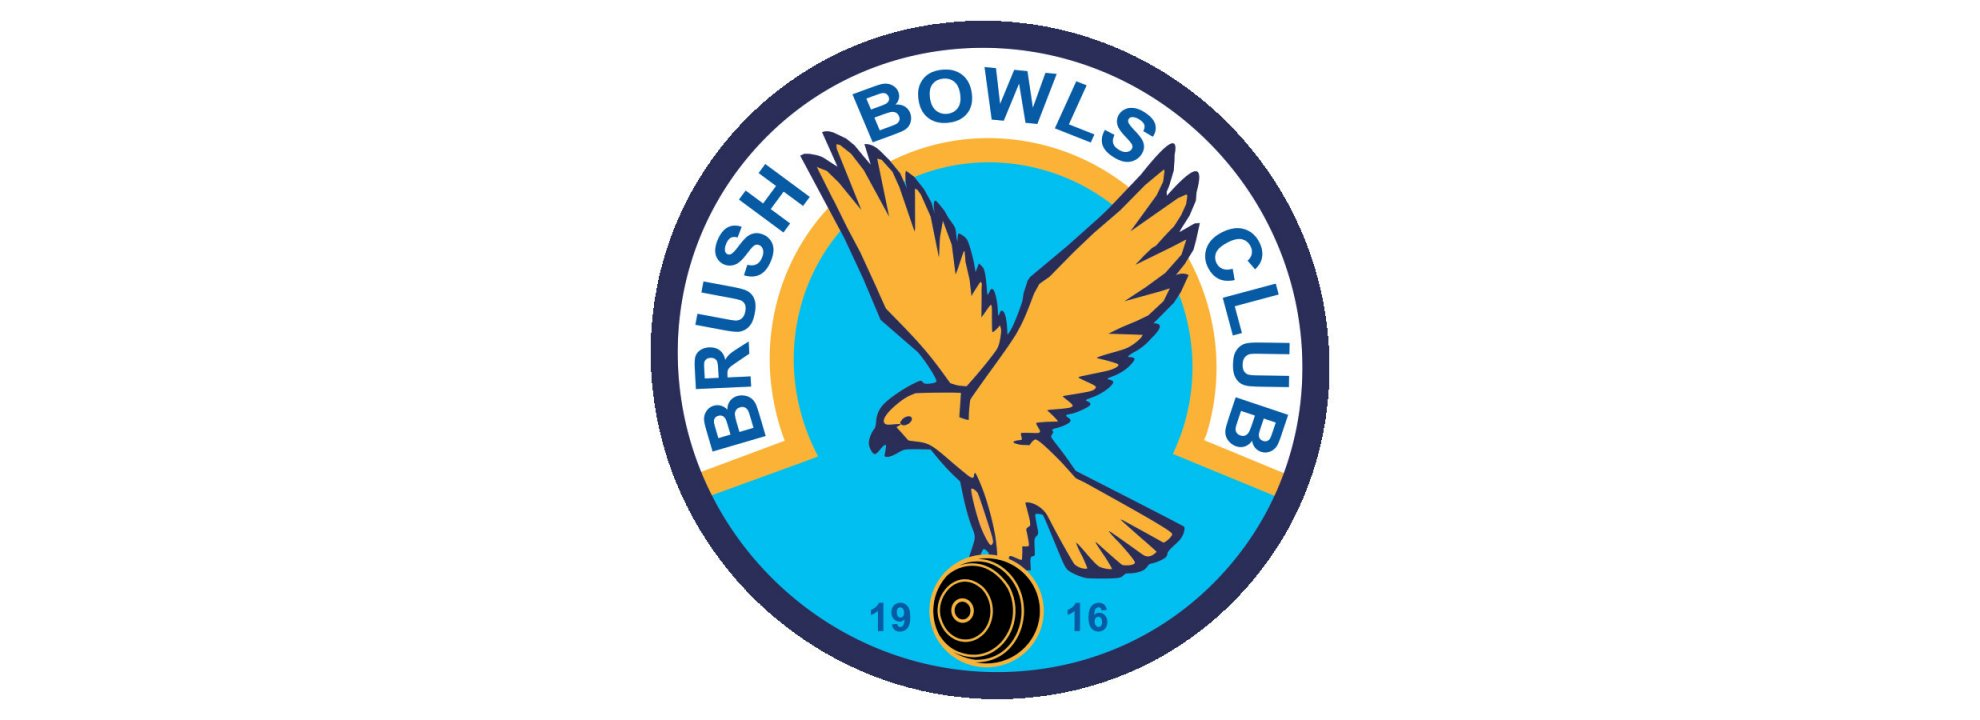 Brush Bowls Club Open Day Banner